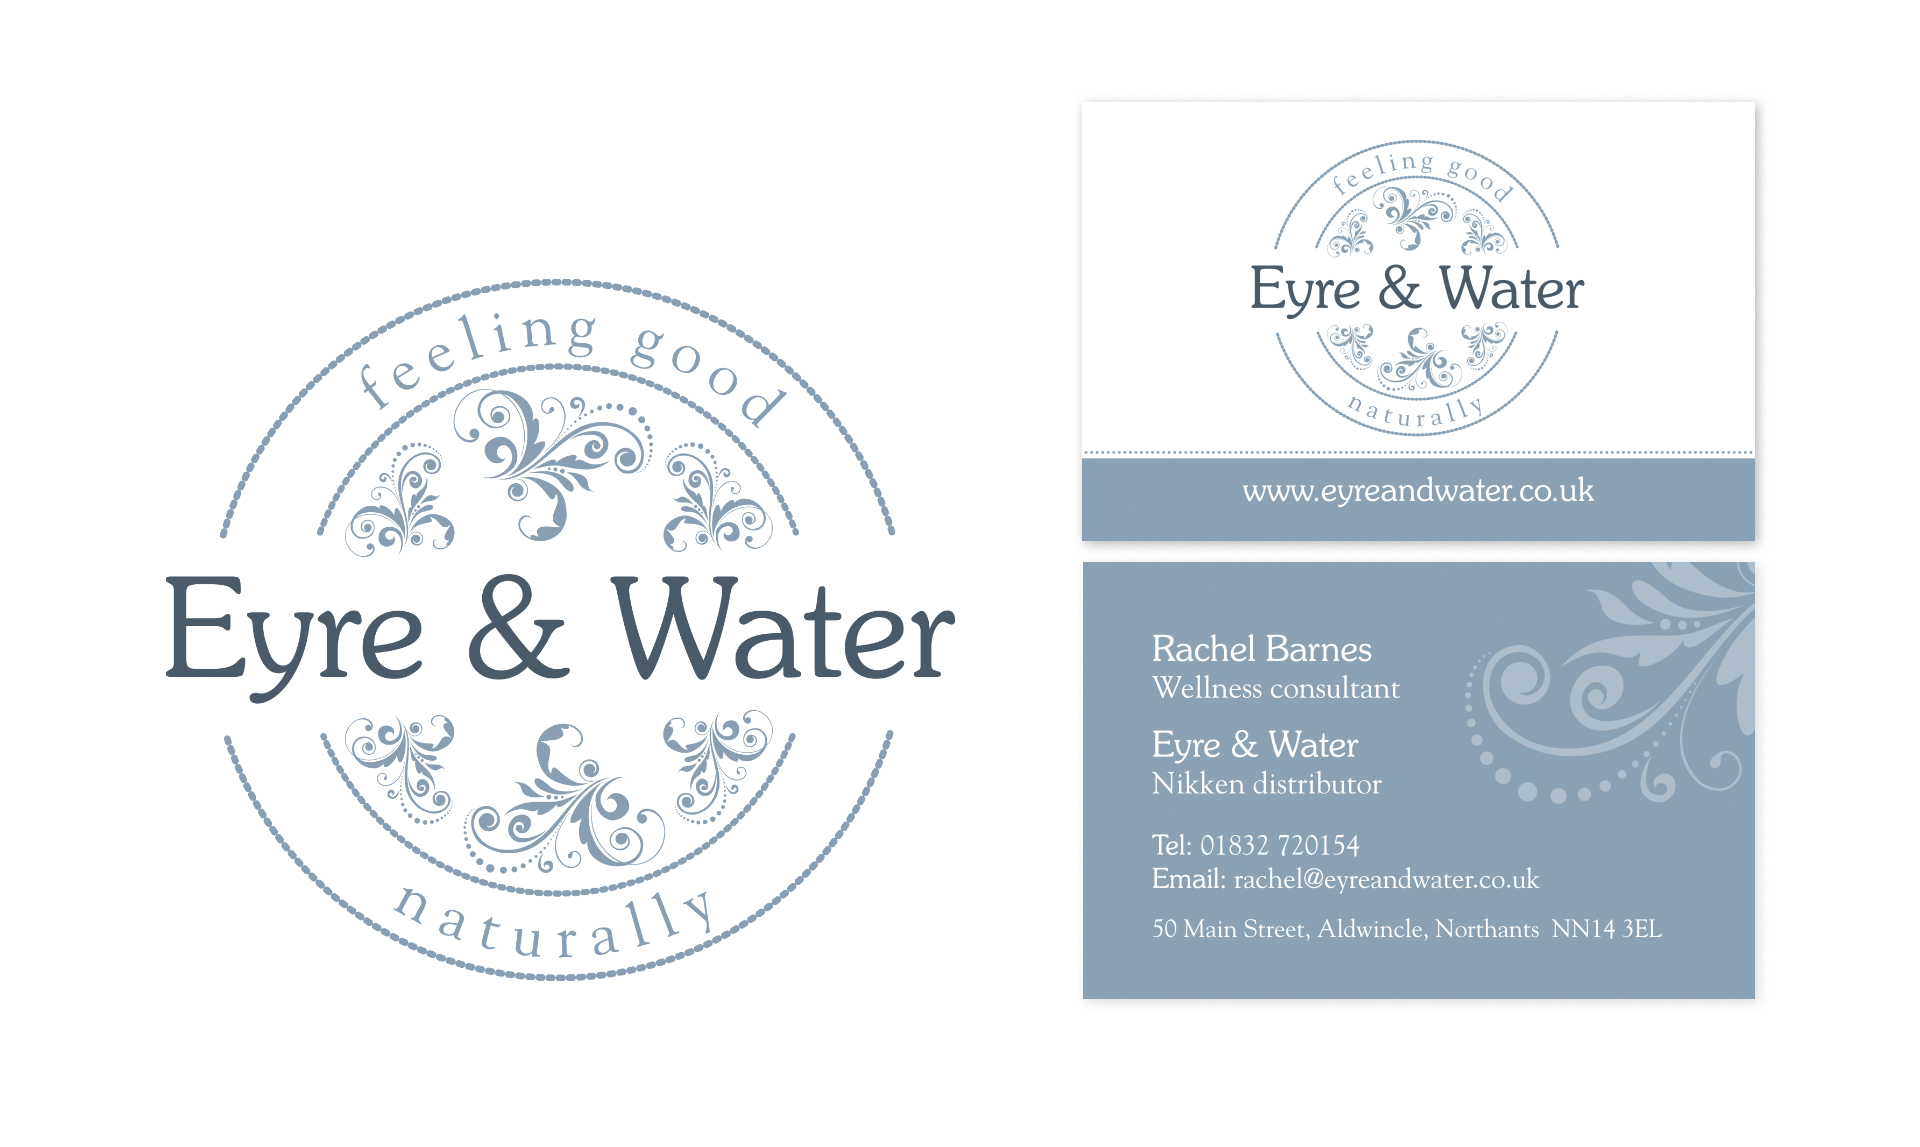 Eyre & Water